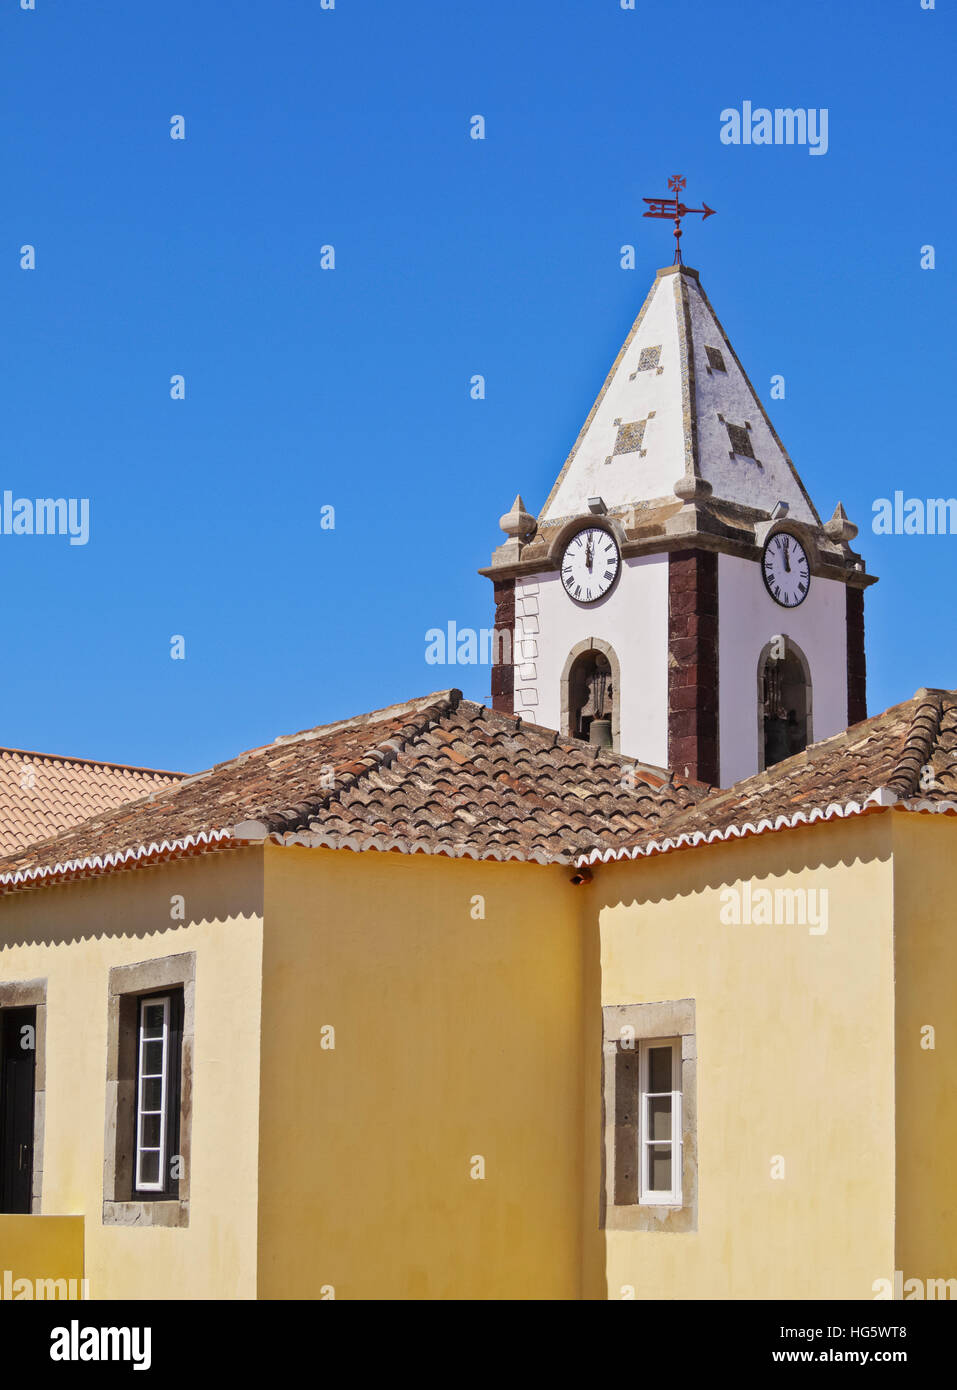 Portugal, Madeira Islands, Porto Santo, Vila Baleira, View of the Casa de Cristovao Colombo Museum and the Church - Stock Image